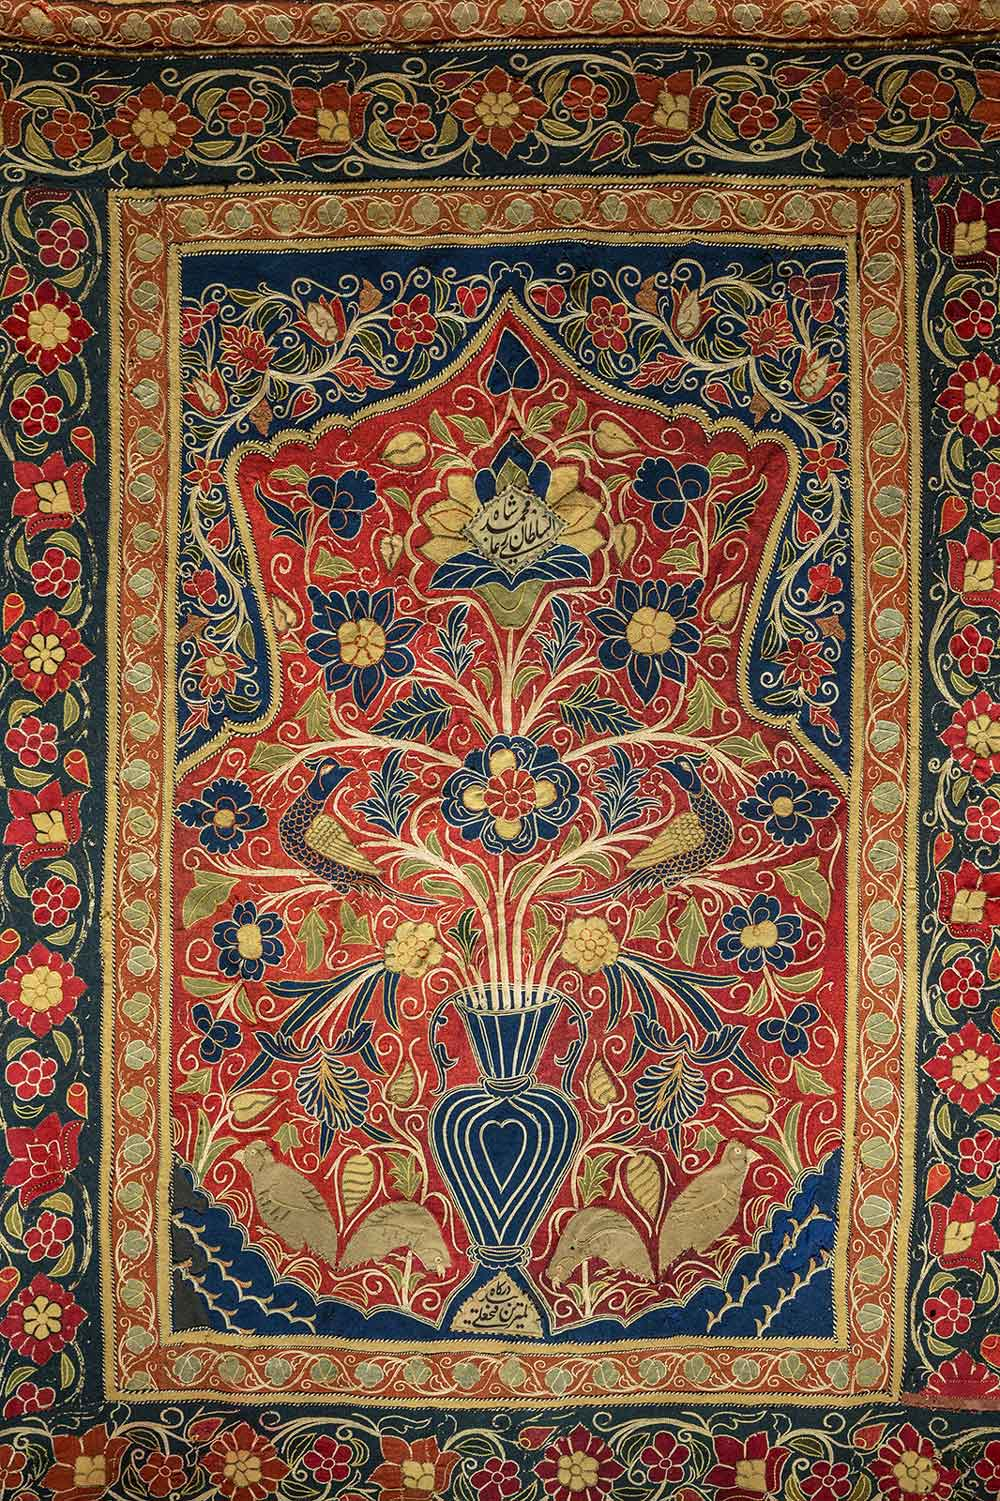 Qajar Imperial Tent, Cleveland Museum of Art